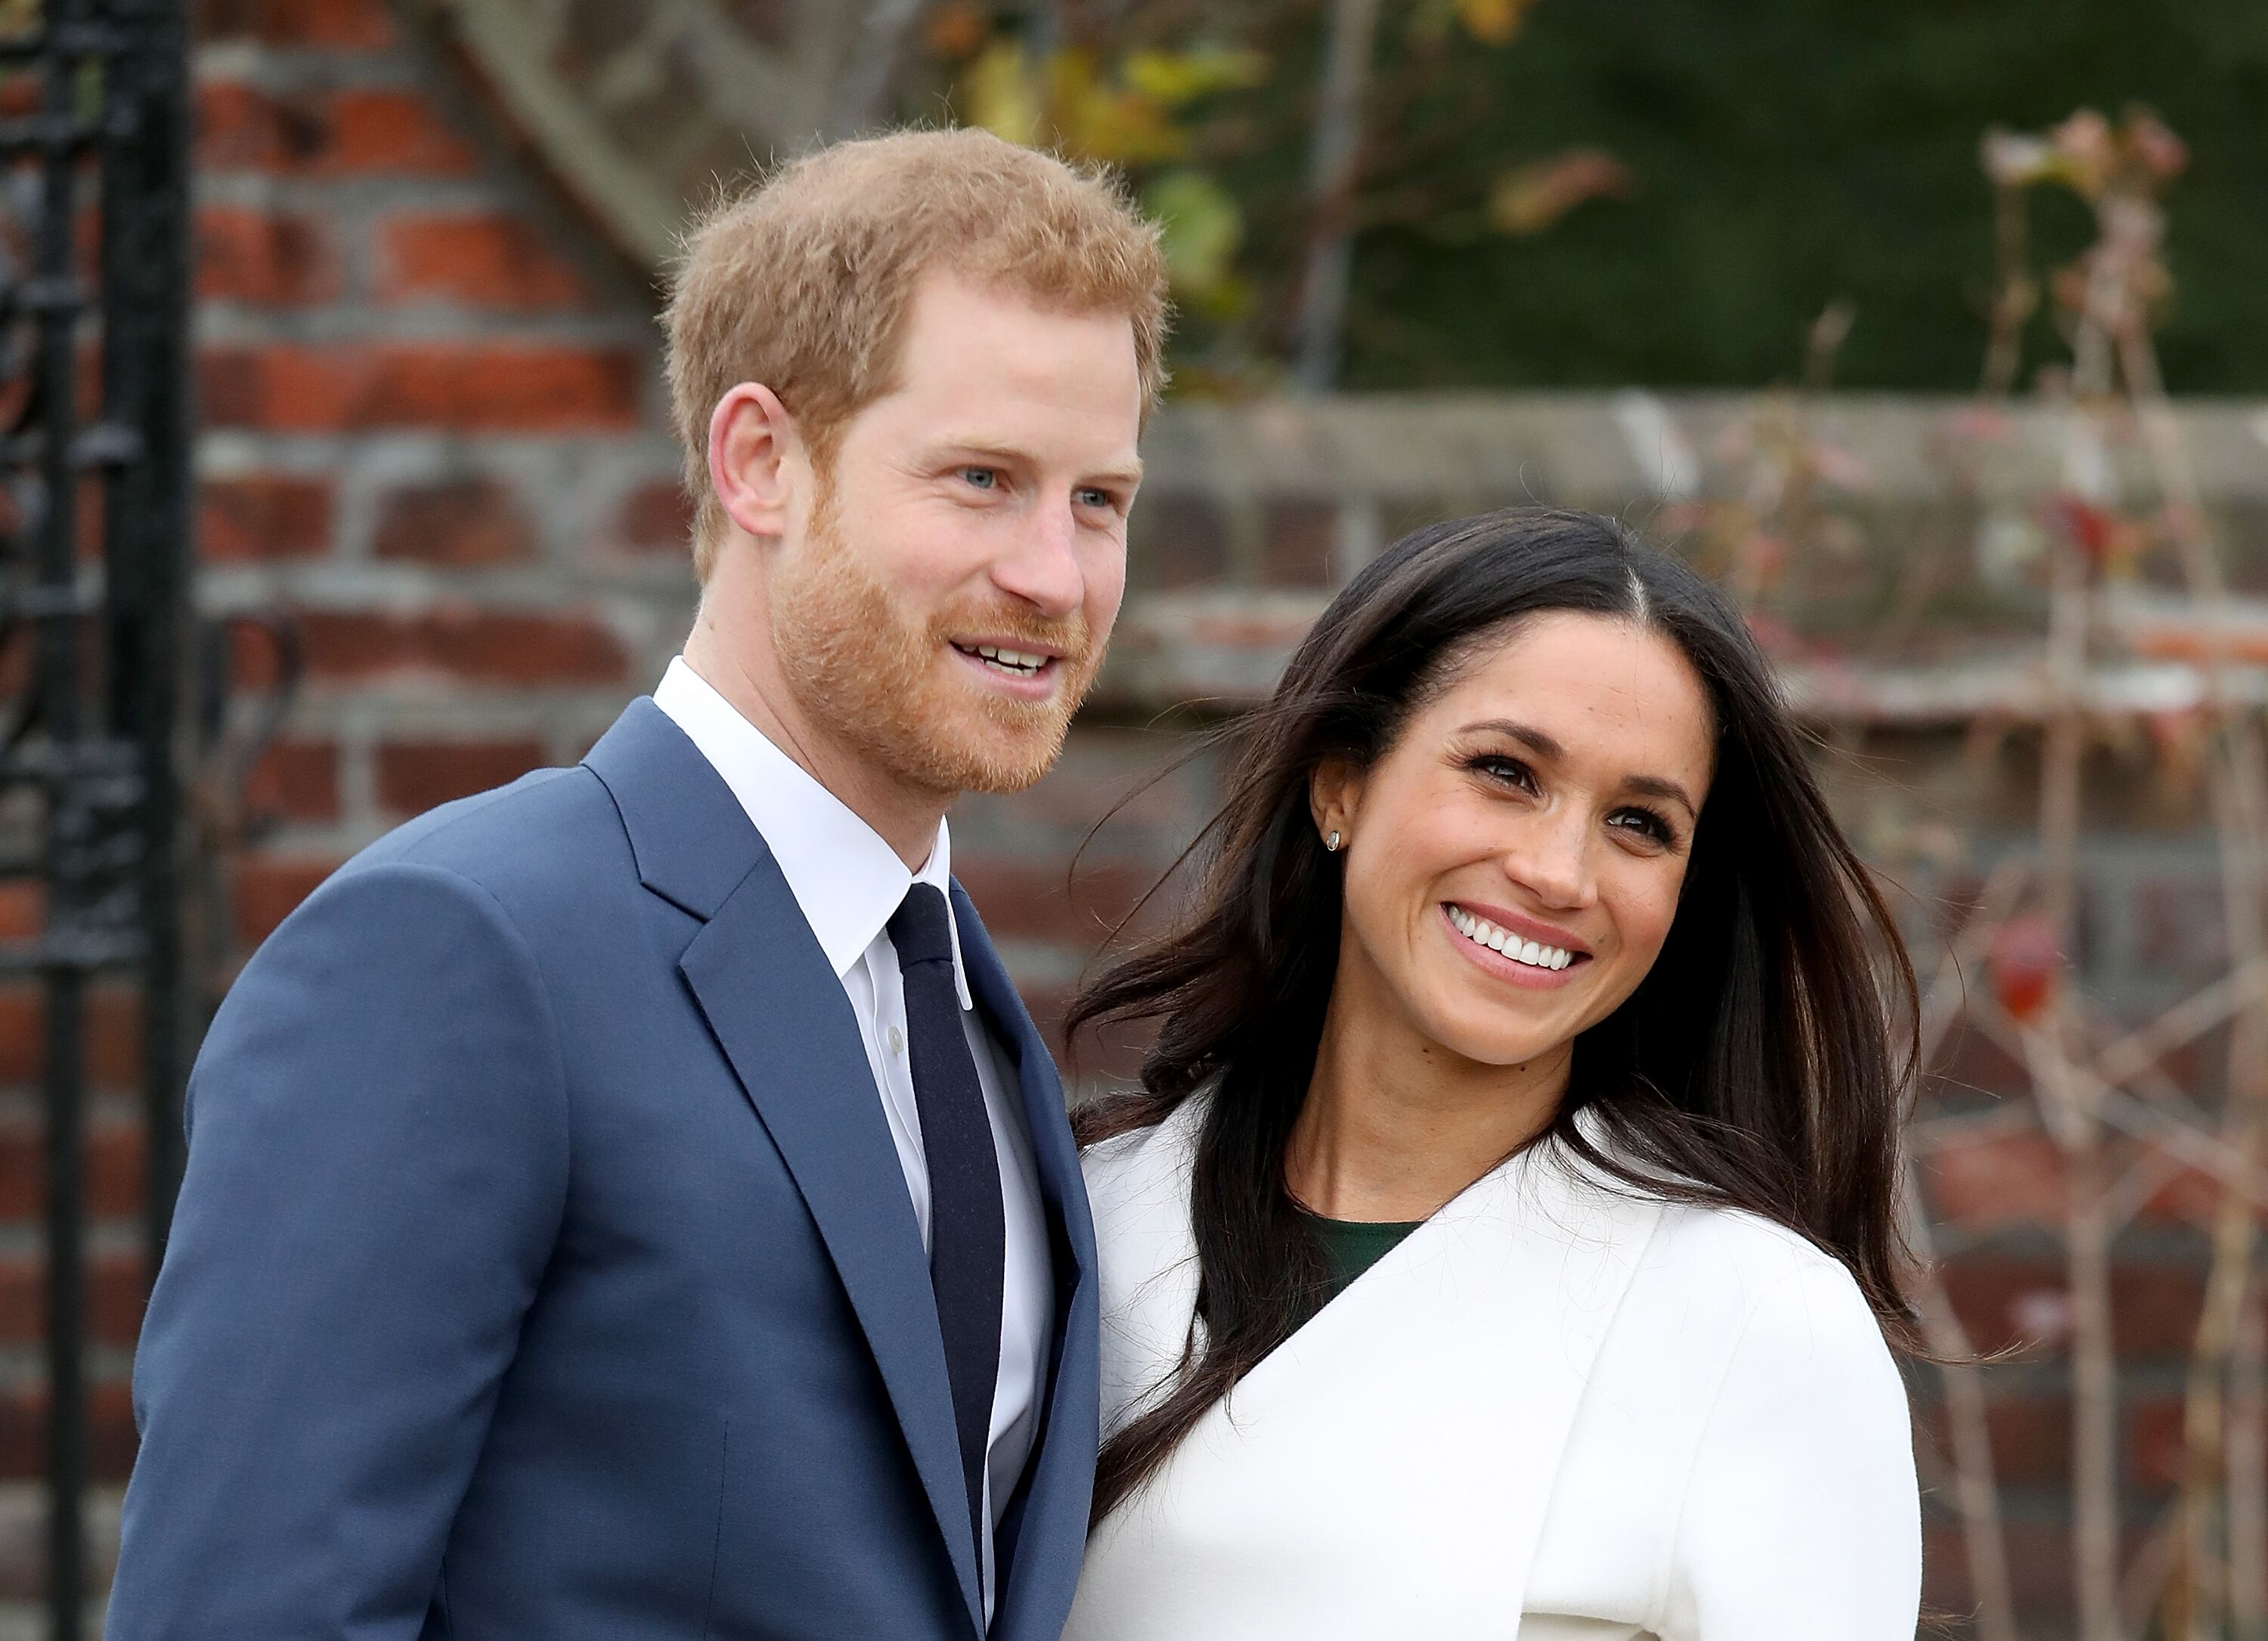 Prince Harry and actress Meghan Markle during an official photocall to announce their engagement at The Sunken Gardens at Kensington Palace on November 27, 2017   Photo: Getty Images